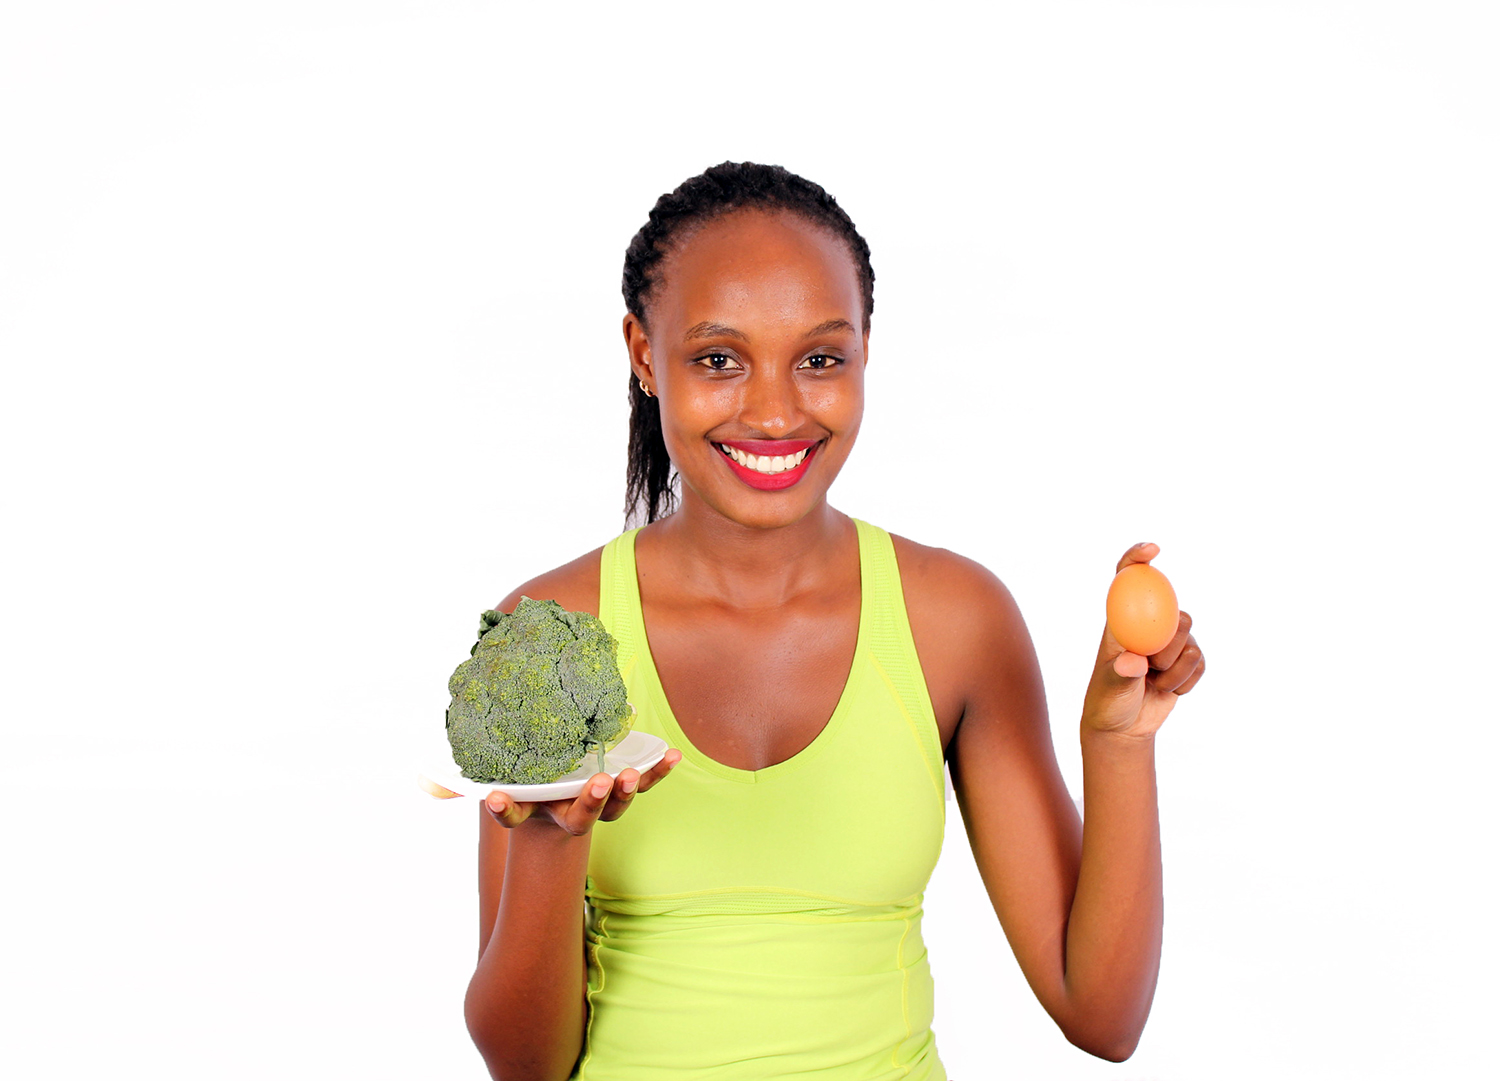 Beautiful woman holding egg and broccoli healthy lifestyle